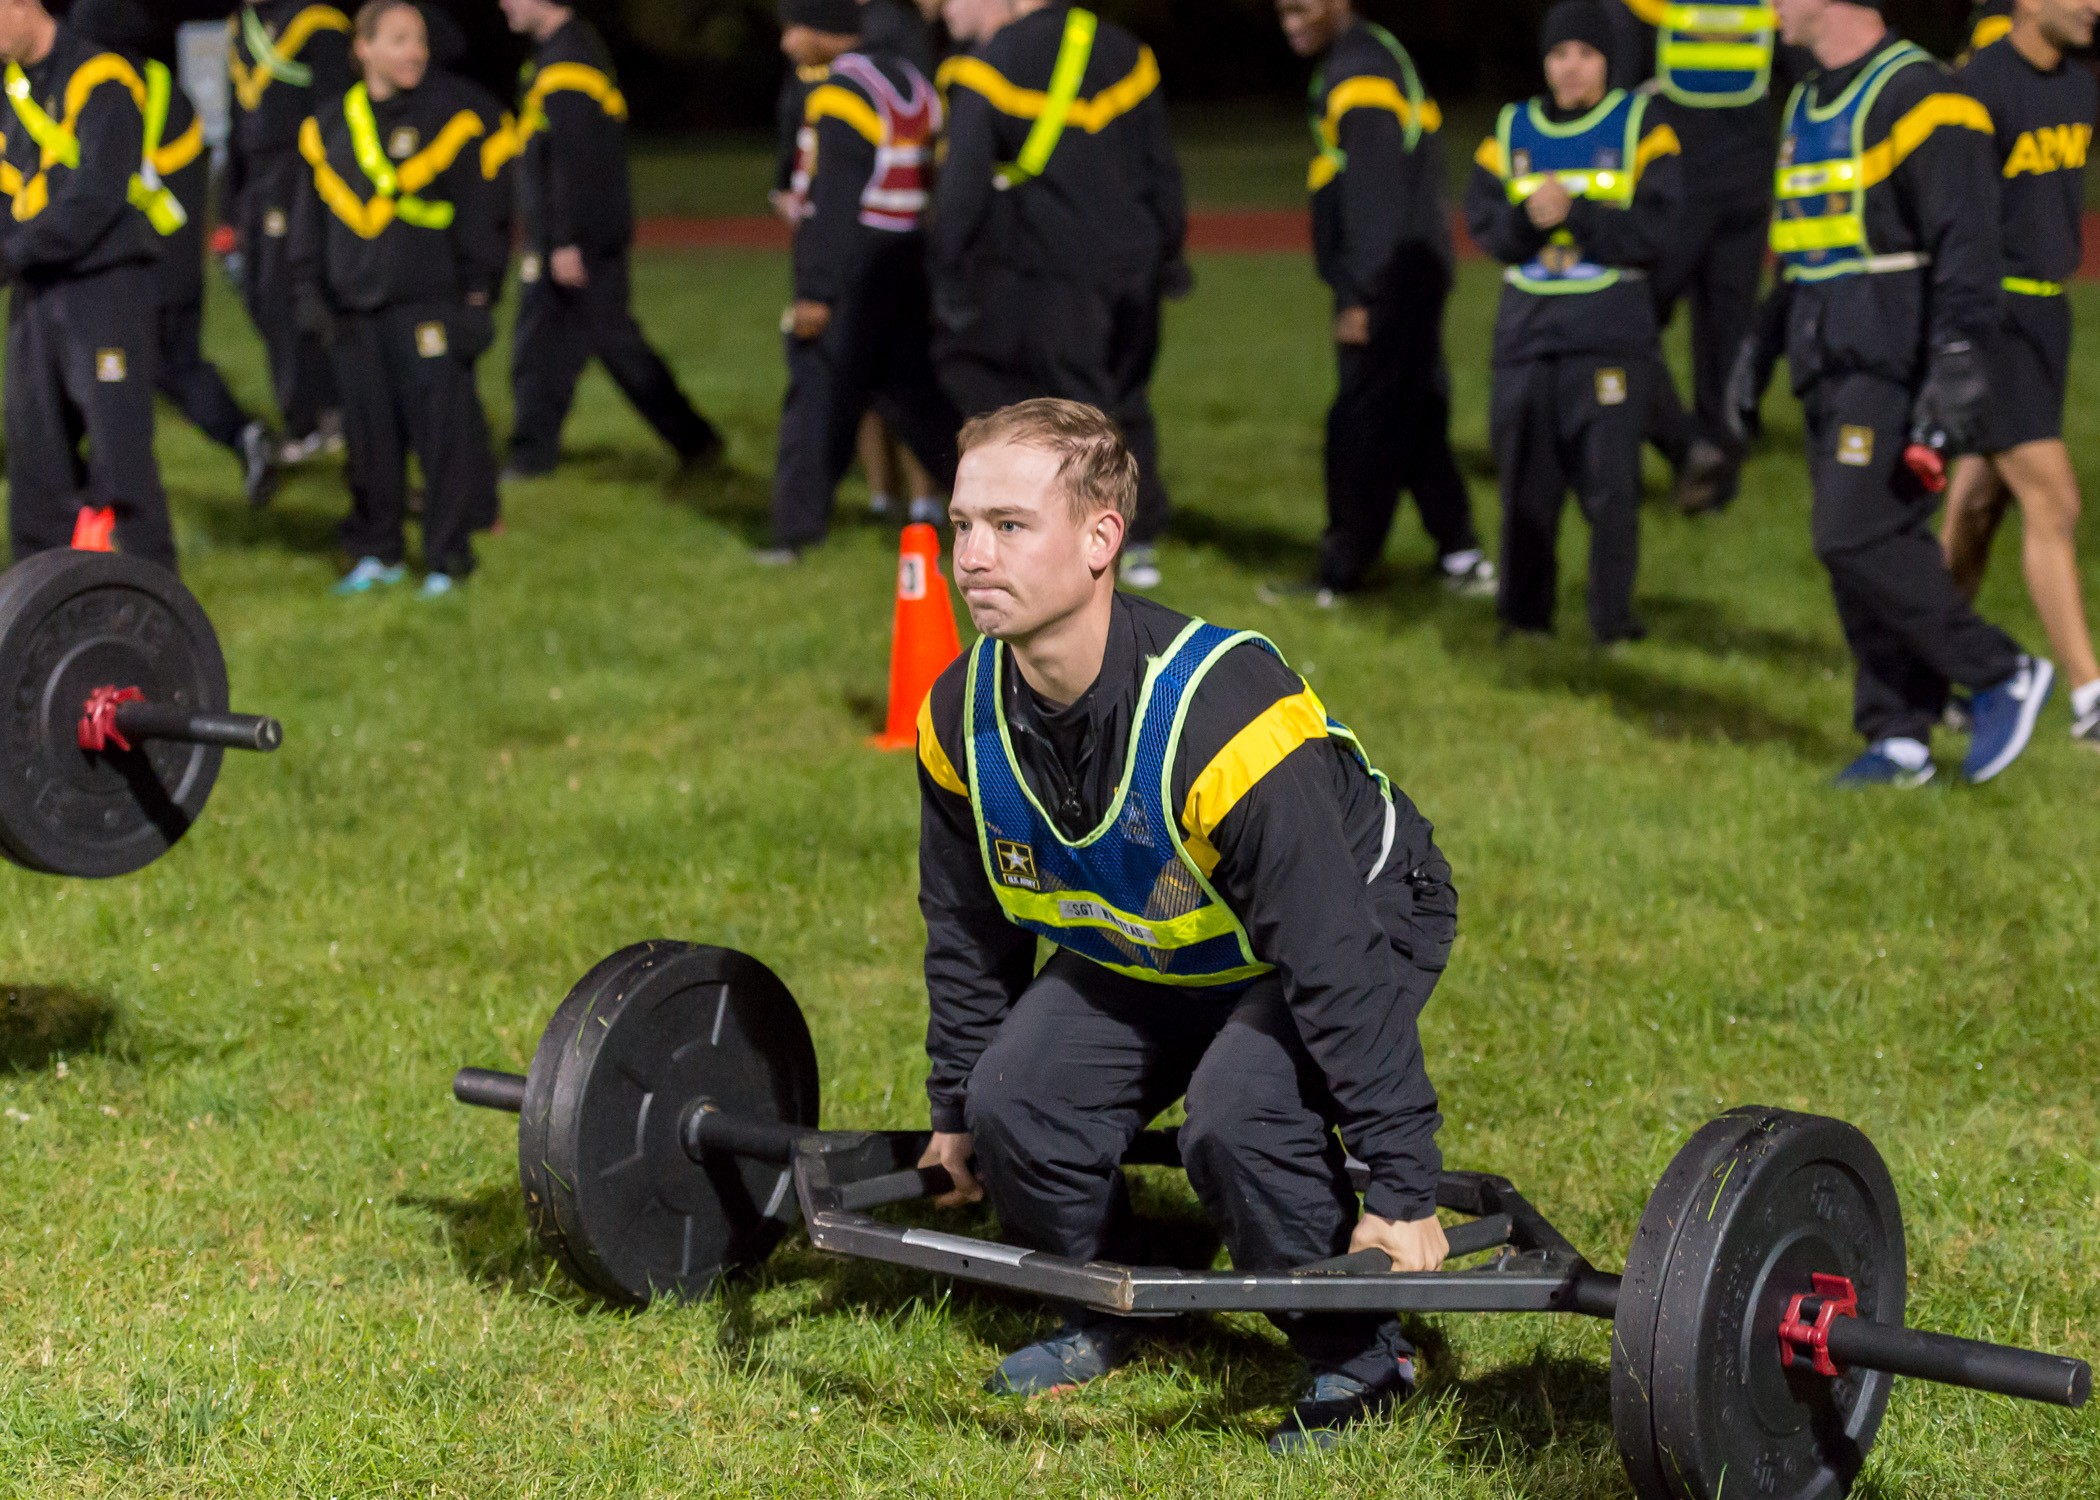 Army units test proposed Physical Fitness Test replacement ...